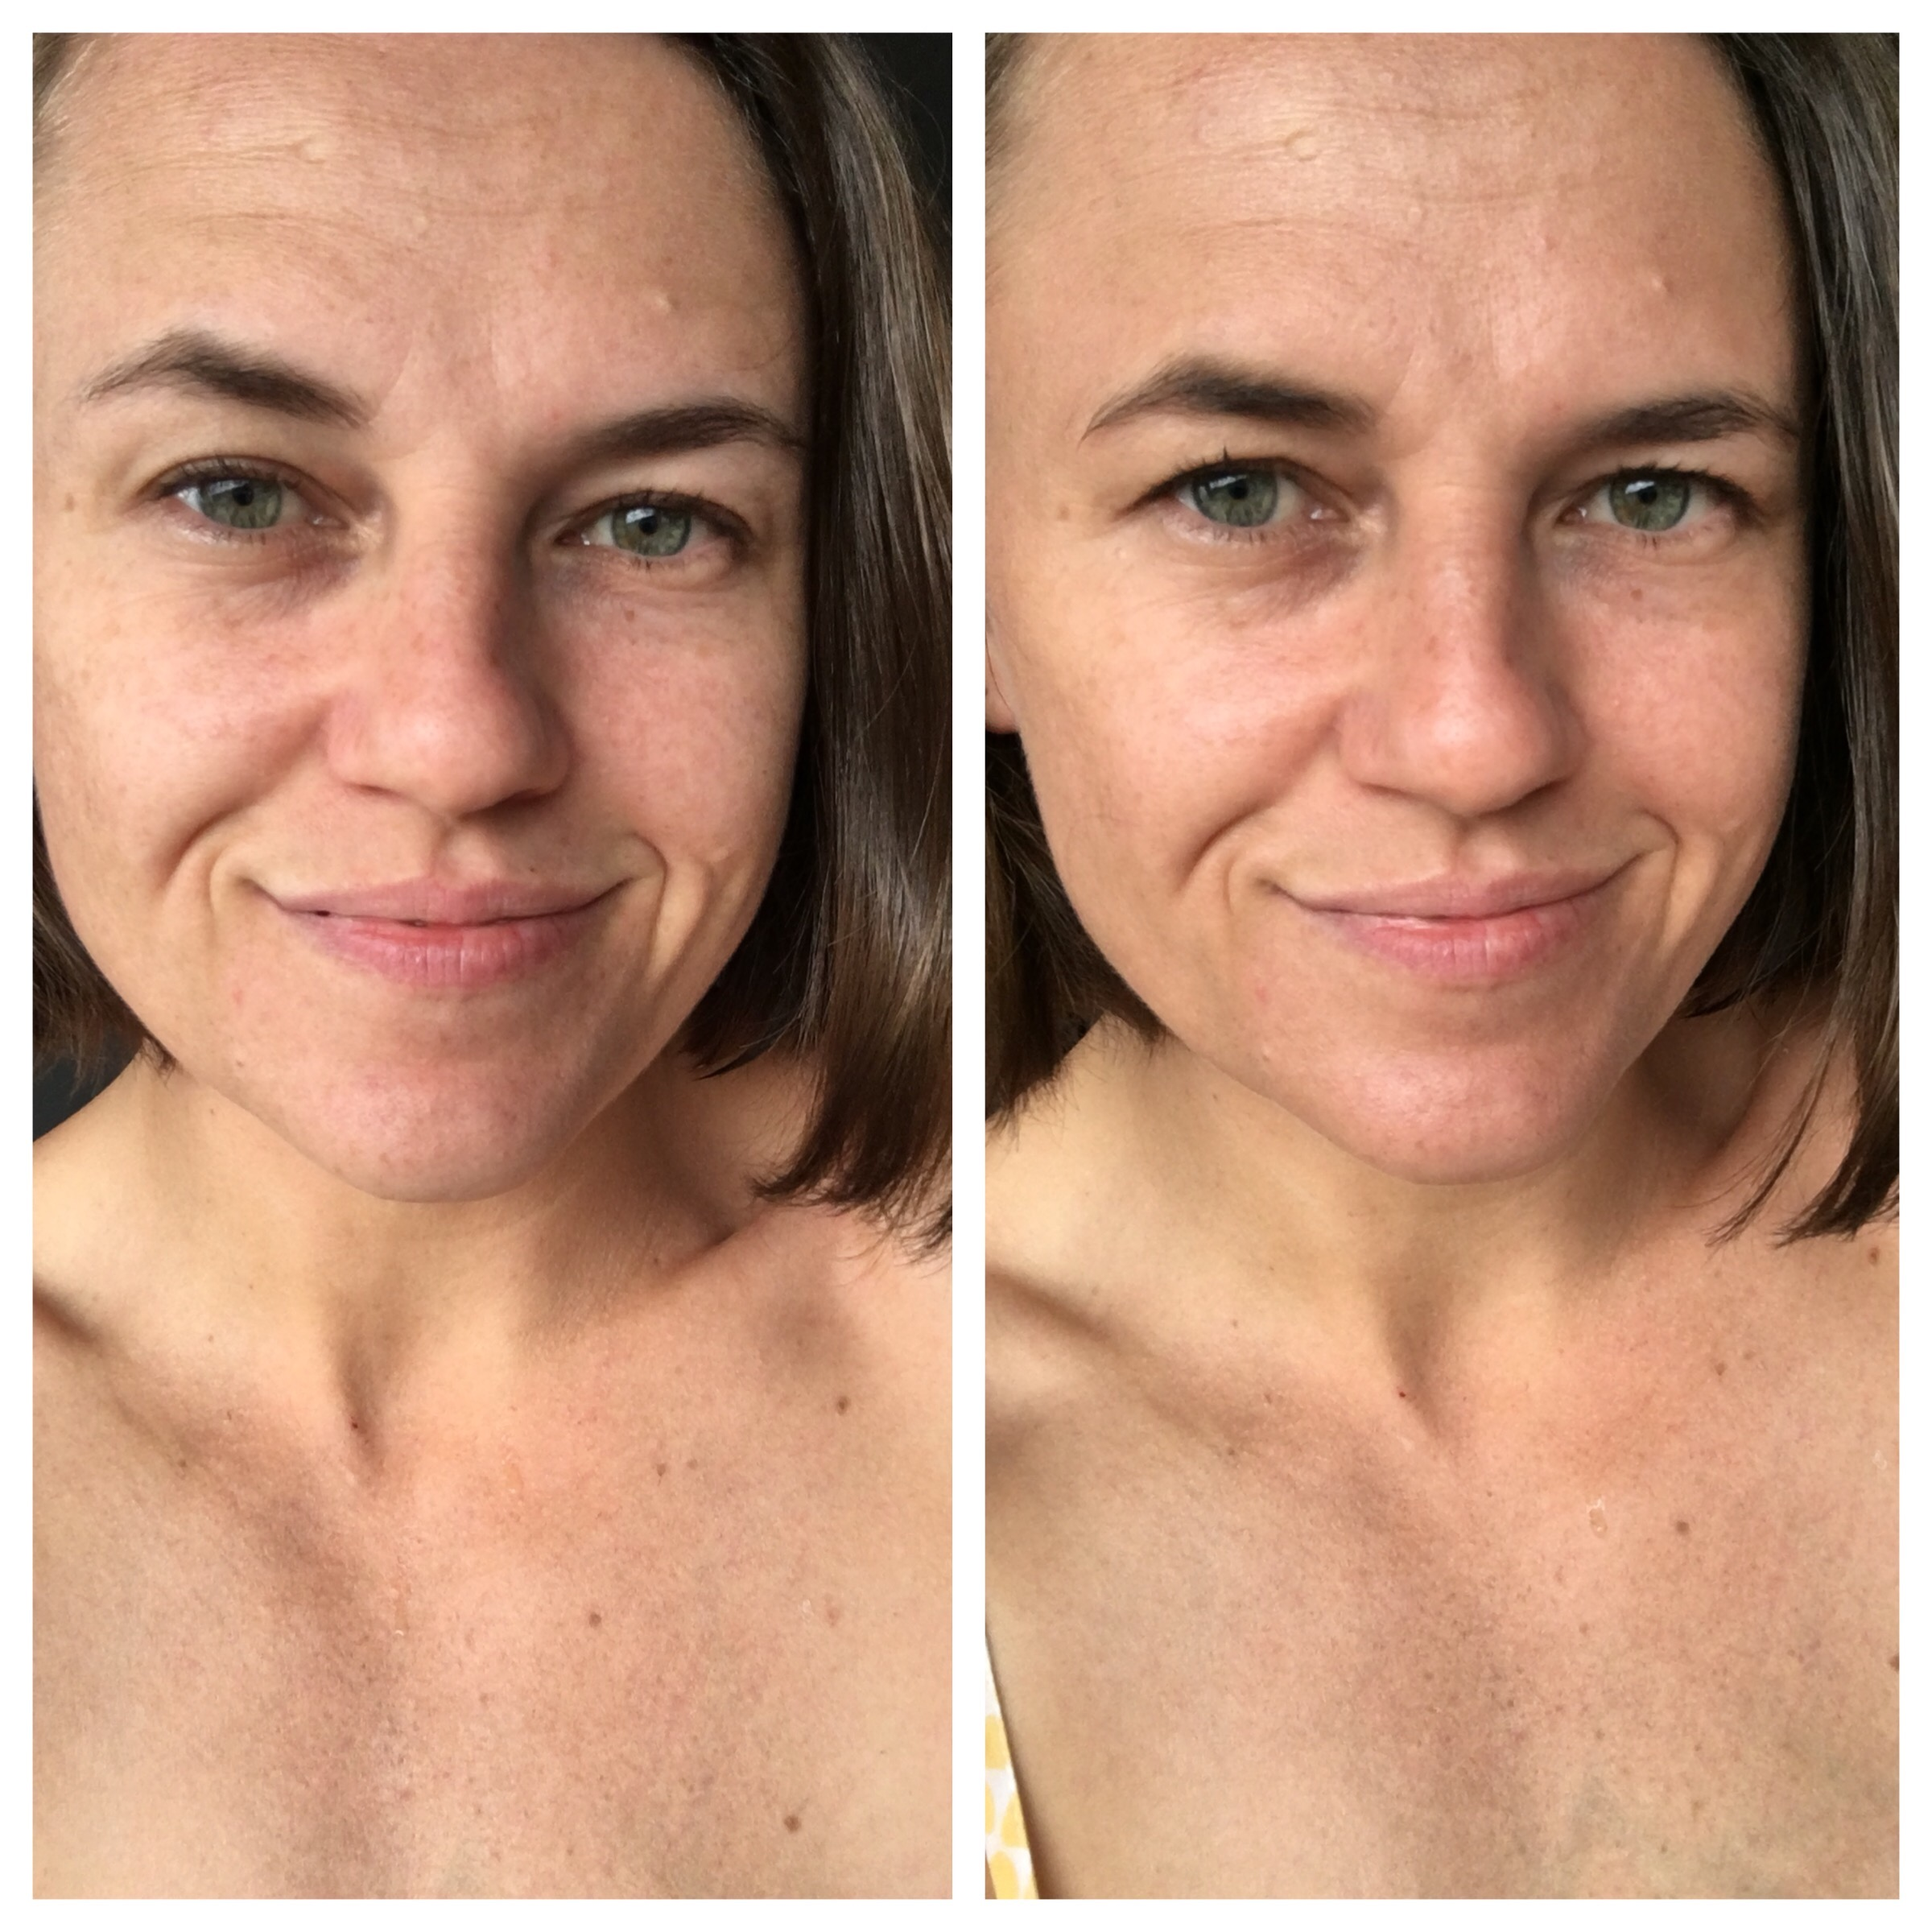 Olay Total Effects BB Cream before and after